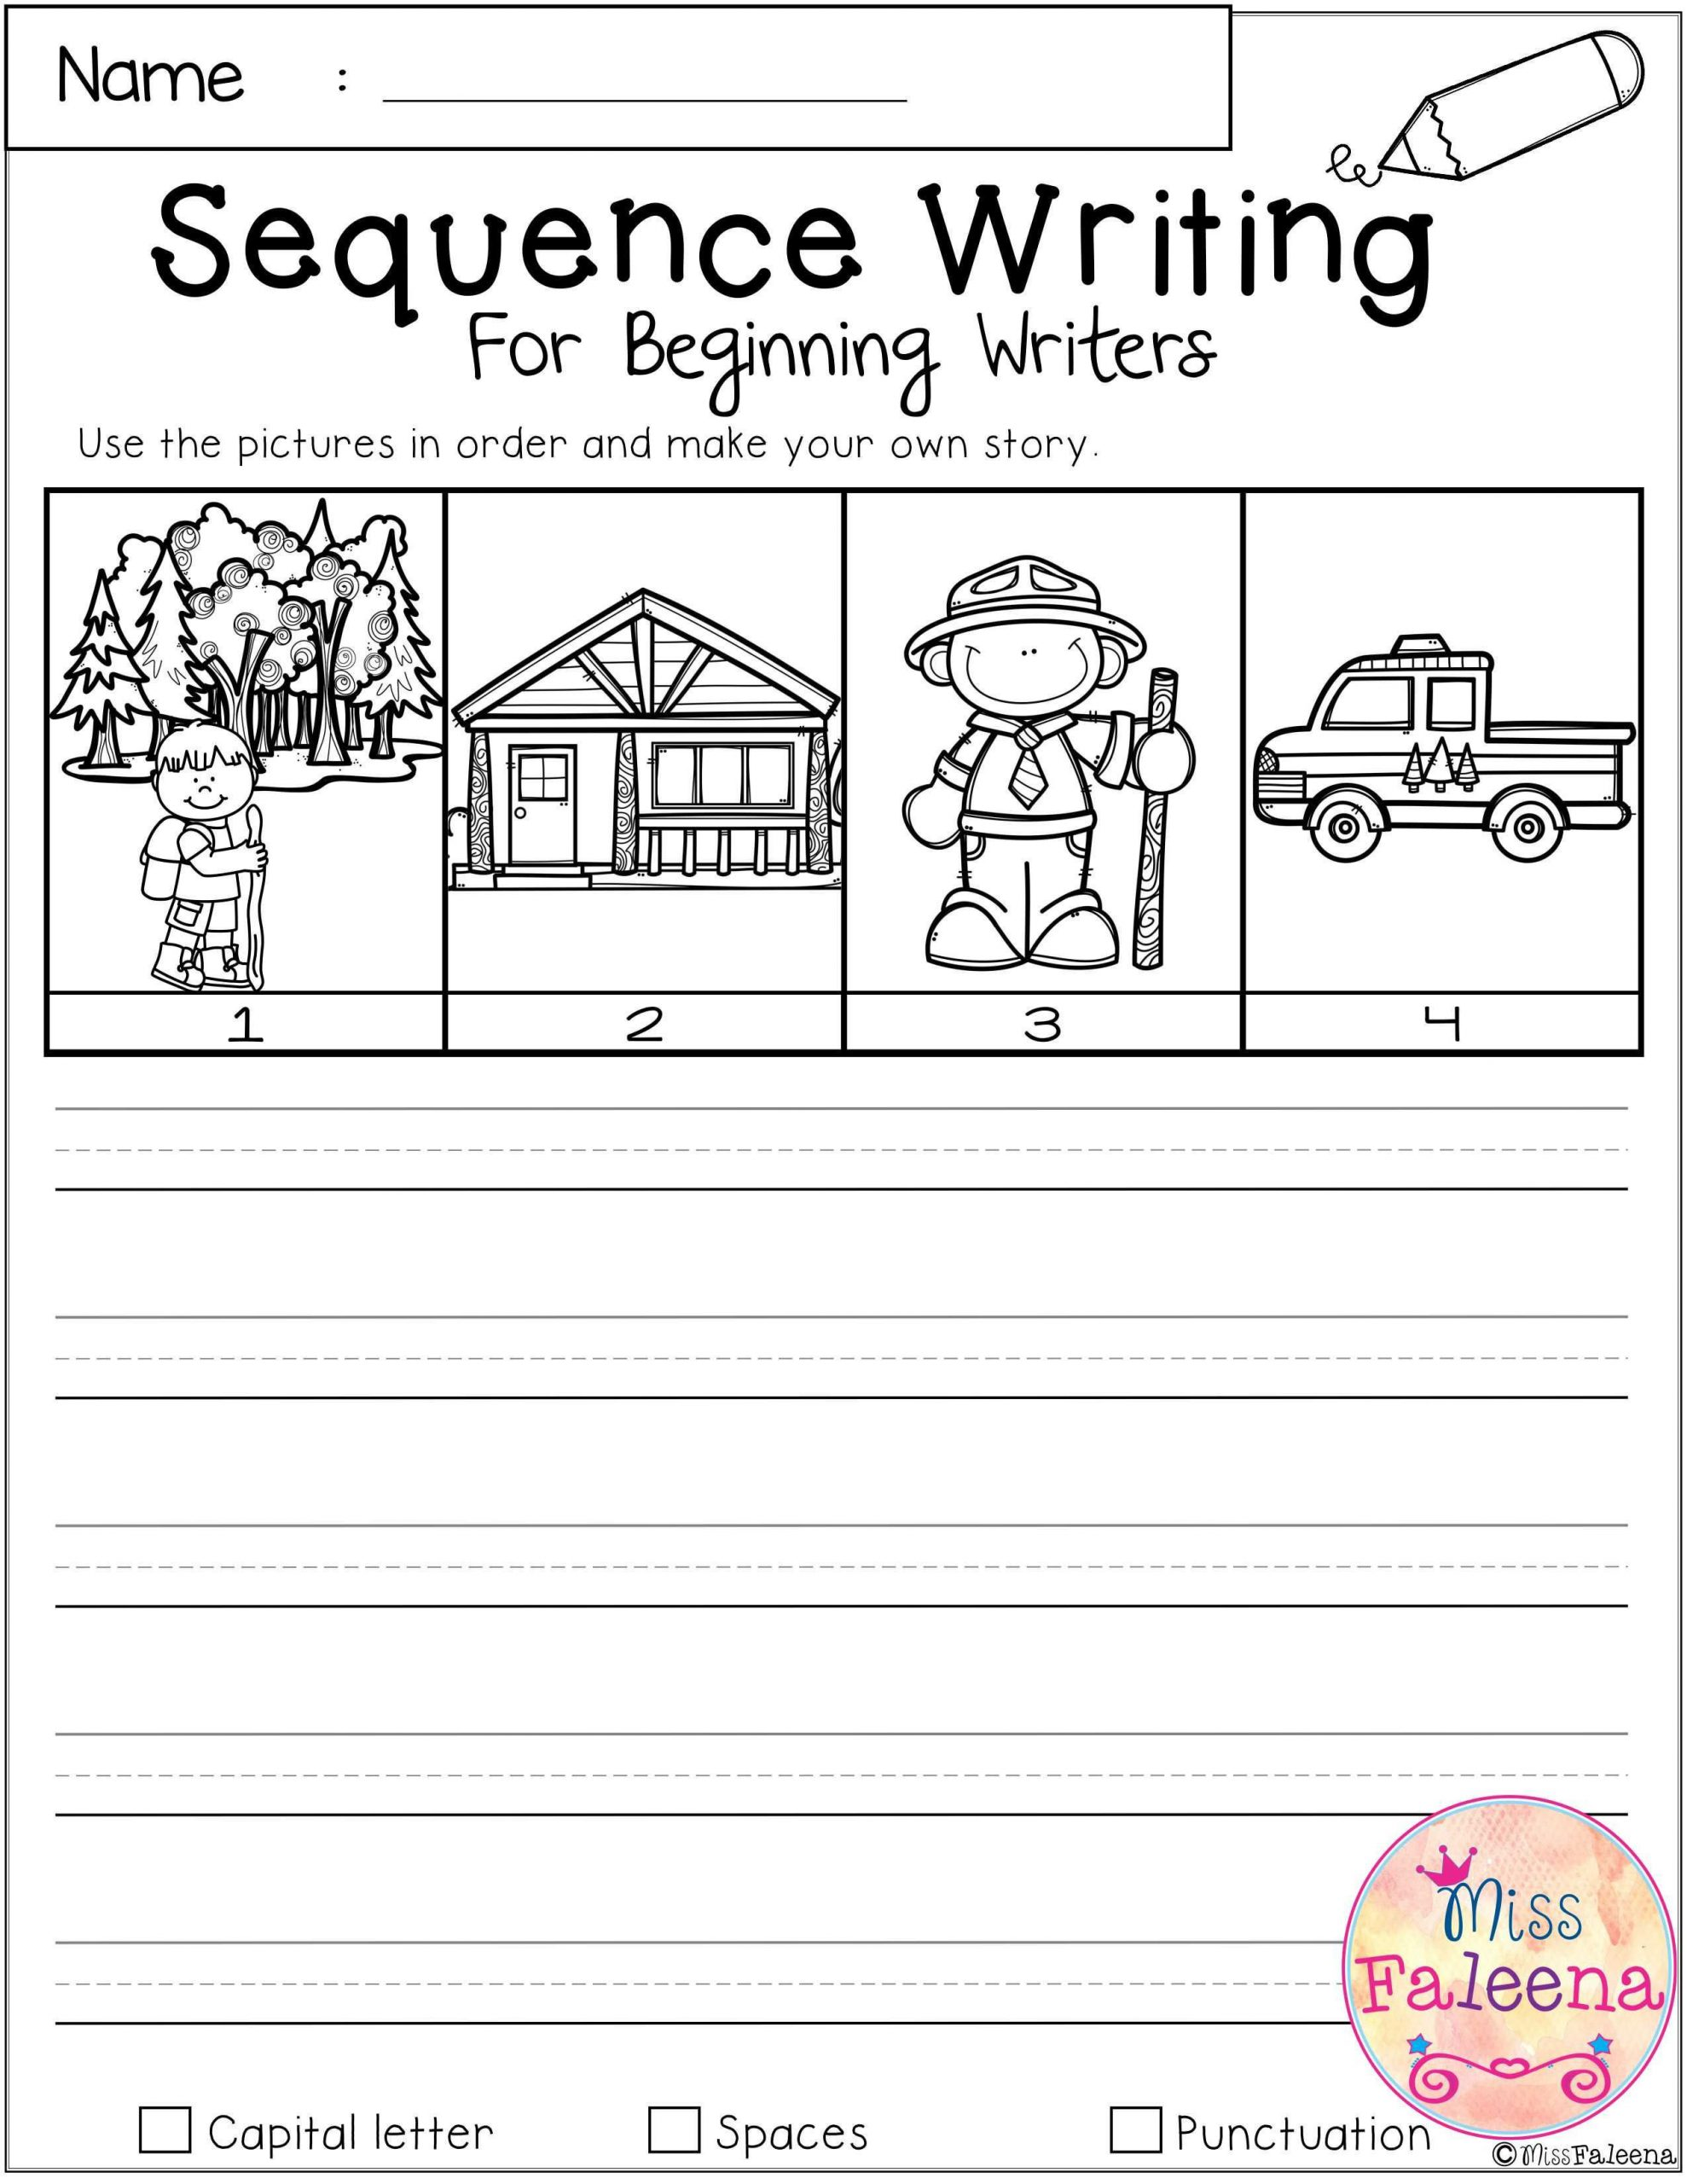 Sequencing Worksheets for Middle School September Sequence Writing for Beginning Writers